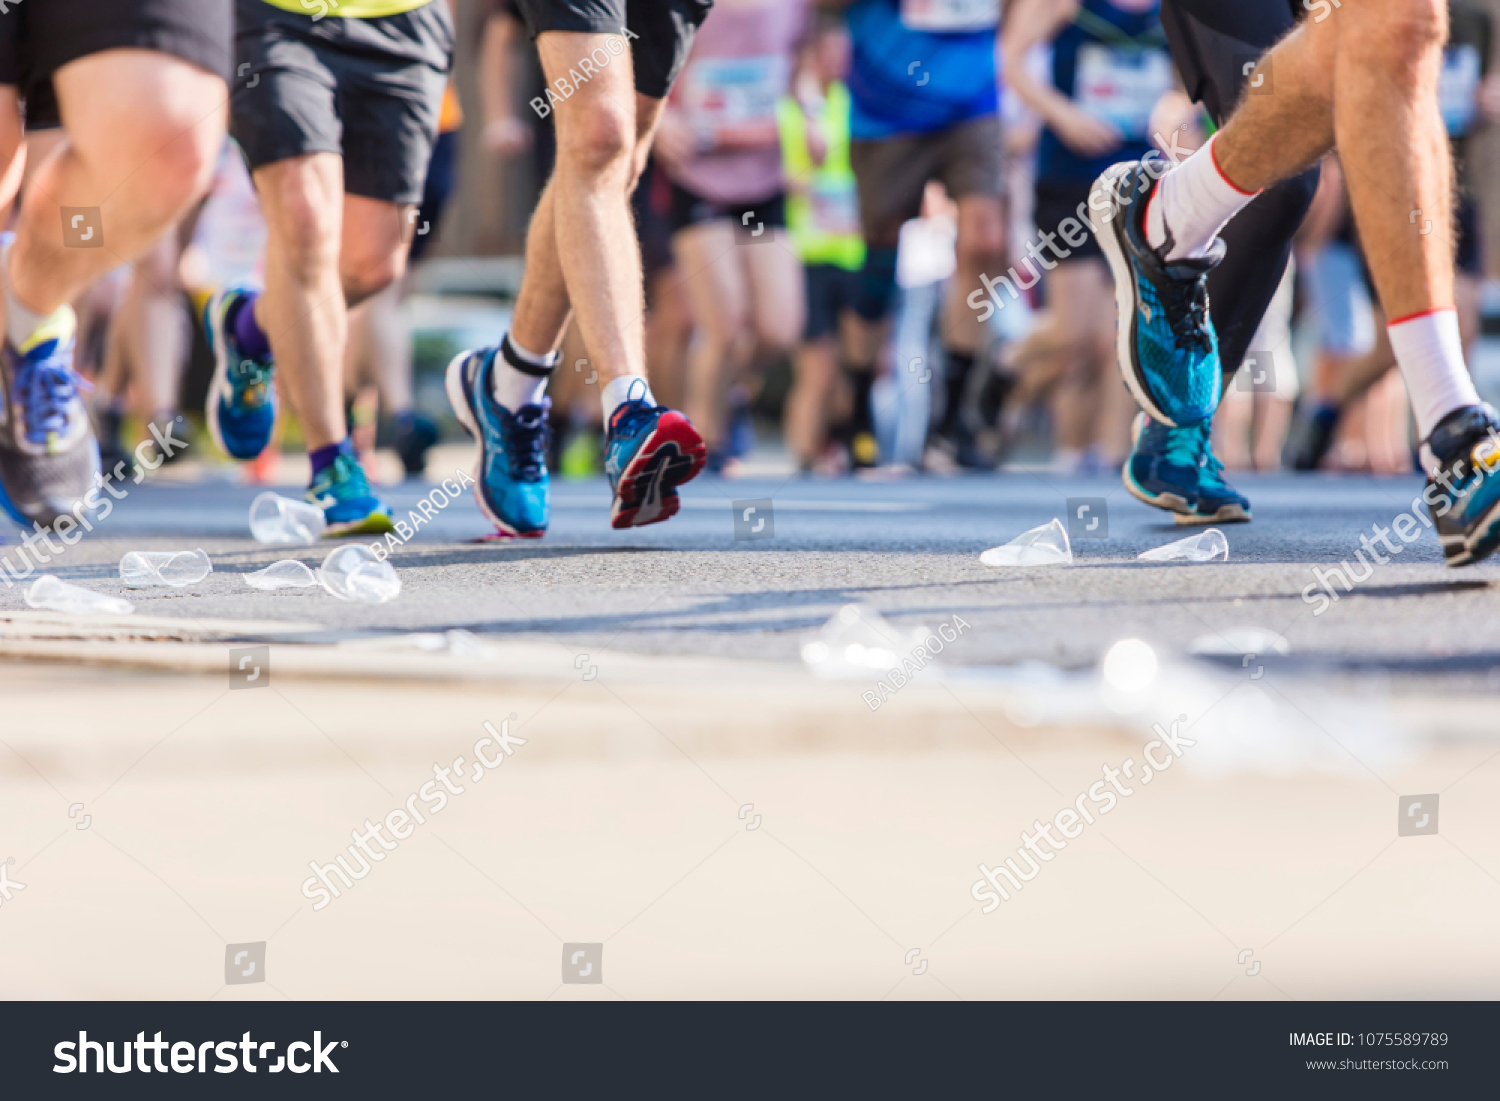 VIENNA - APRIL 22, 2018: The 35 Vienna Marathon. People running through the city streets. Austria on April 22, 2018.  #1075589789